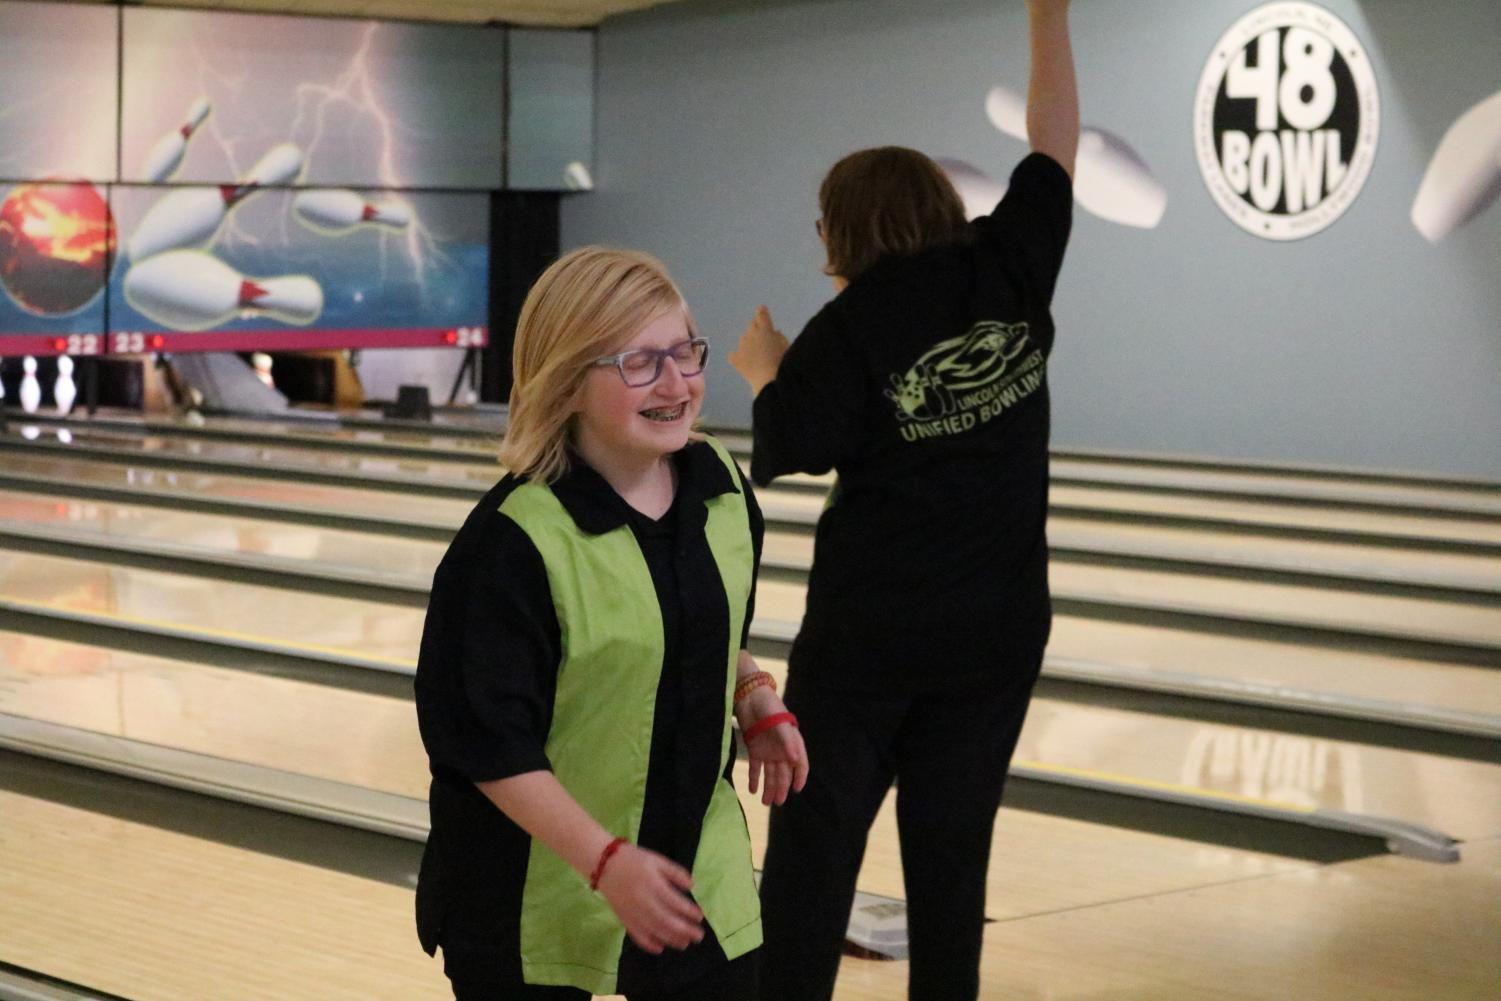 Unified Bowling Strikes Up Fun and New Friendships